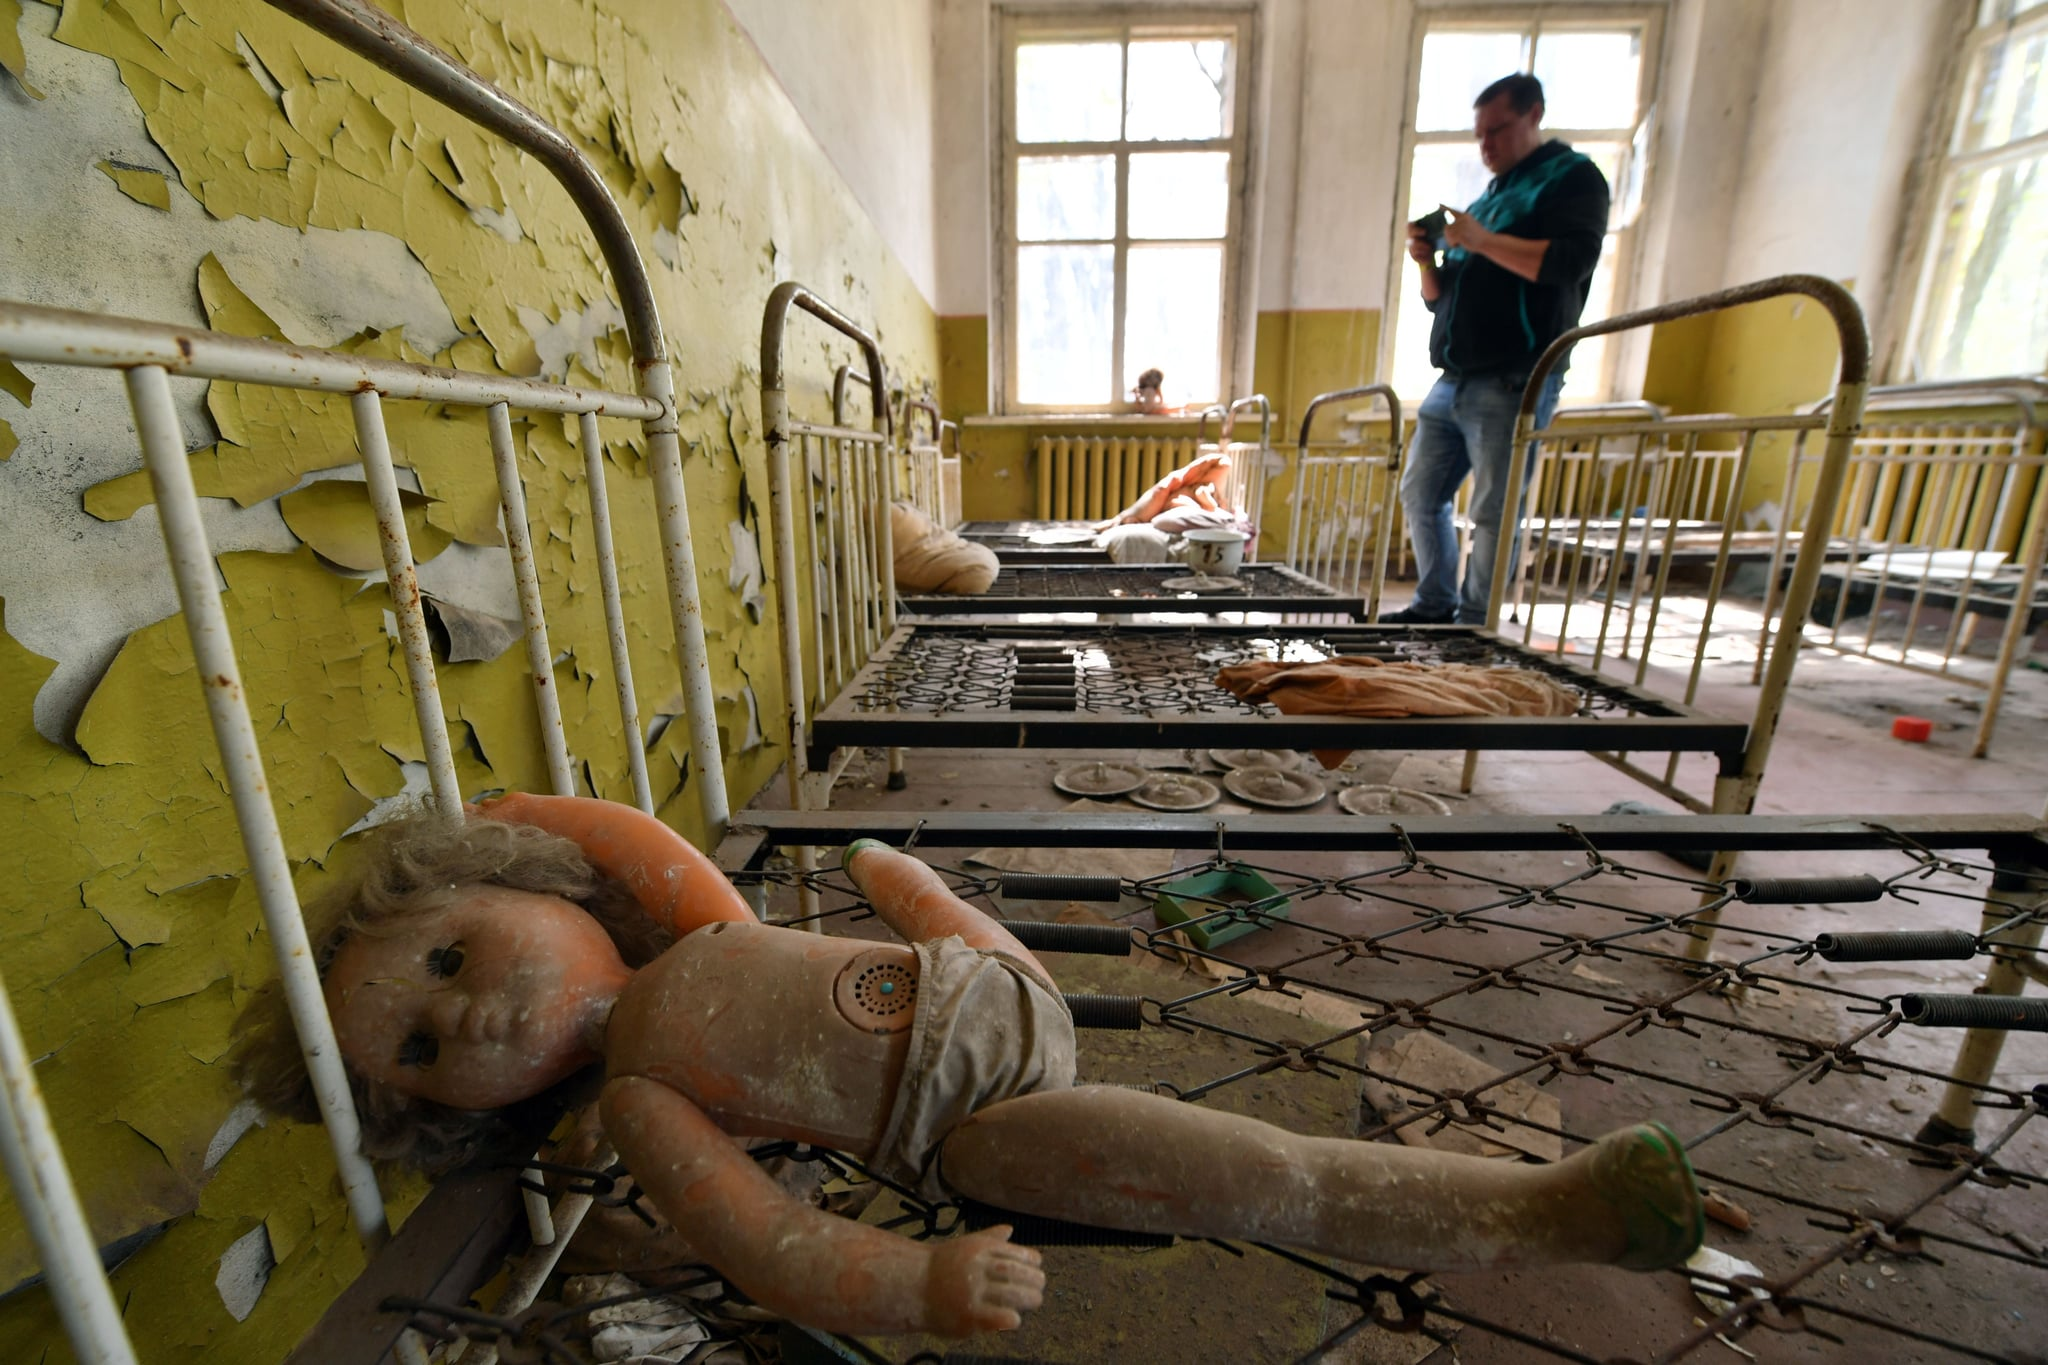 TOPSHOT - A tourist takes a picture in an abandoned kindergarten in the ghost village of Kopachi near Chernobyl Nuclear power plant during their tour to the Chernobyl exclusion zone on April 23, 2018. - Ukraine on April 26, 2018 will mark the 32nd anniversary of the Chernobyl disaster which was the world's worst nuclear accident. (Photo by Sergei SUPINSKY / AFP)        (Photo credit should read SERGEI SUPINSKY/AFP/Getty Images)